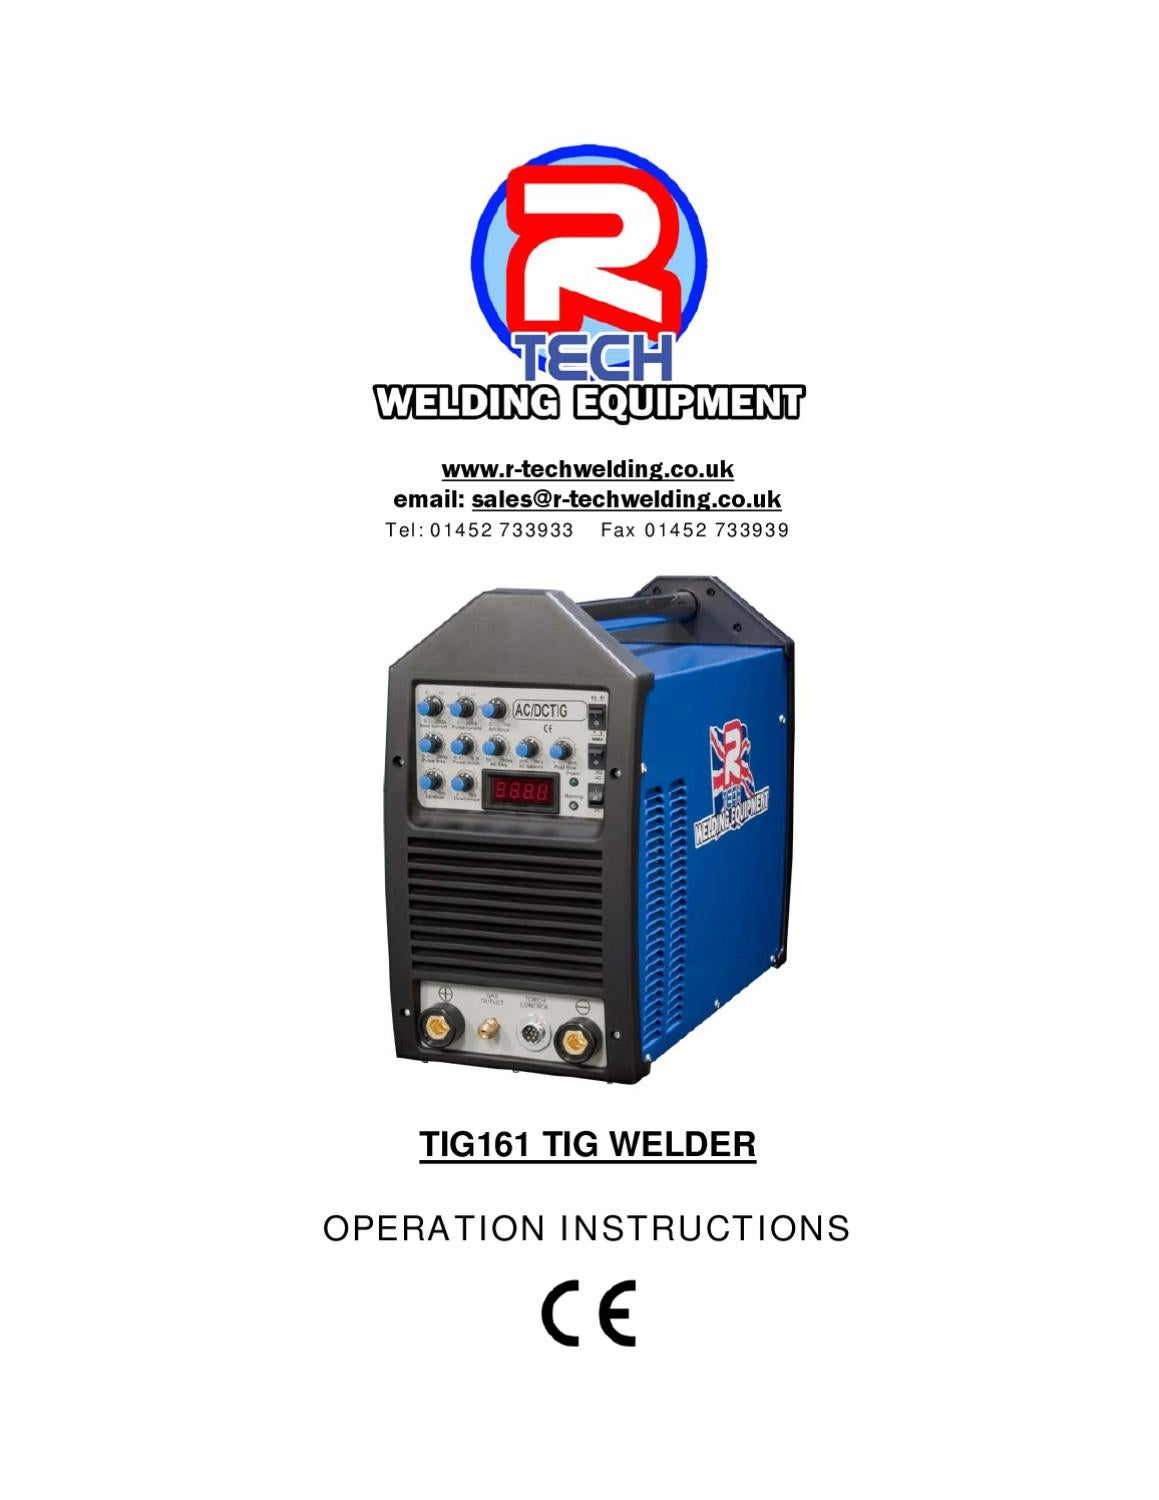 Tig Welder Owners Manual TIG161 By R Tech Welding Equipment Ltd